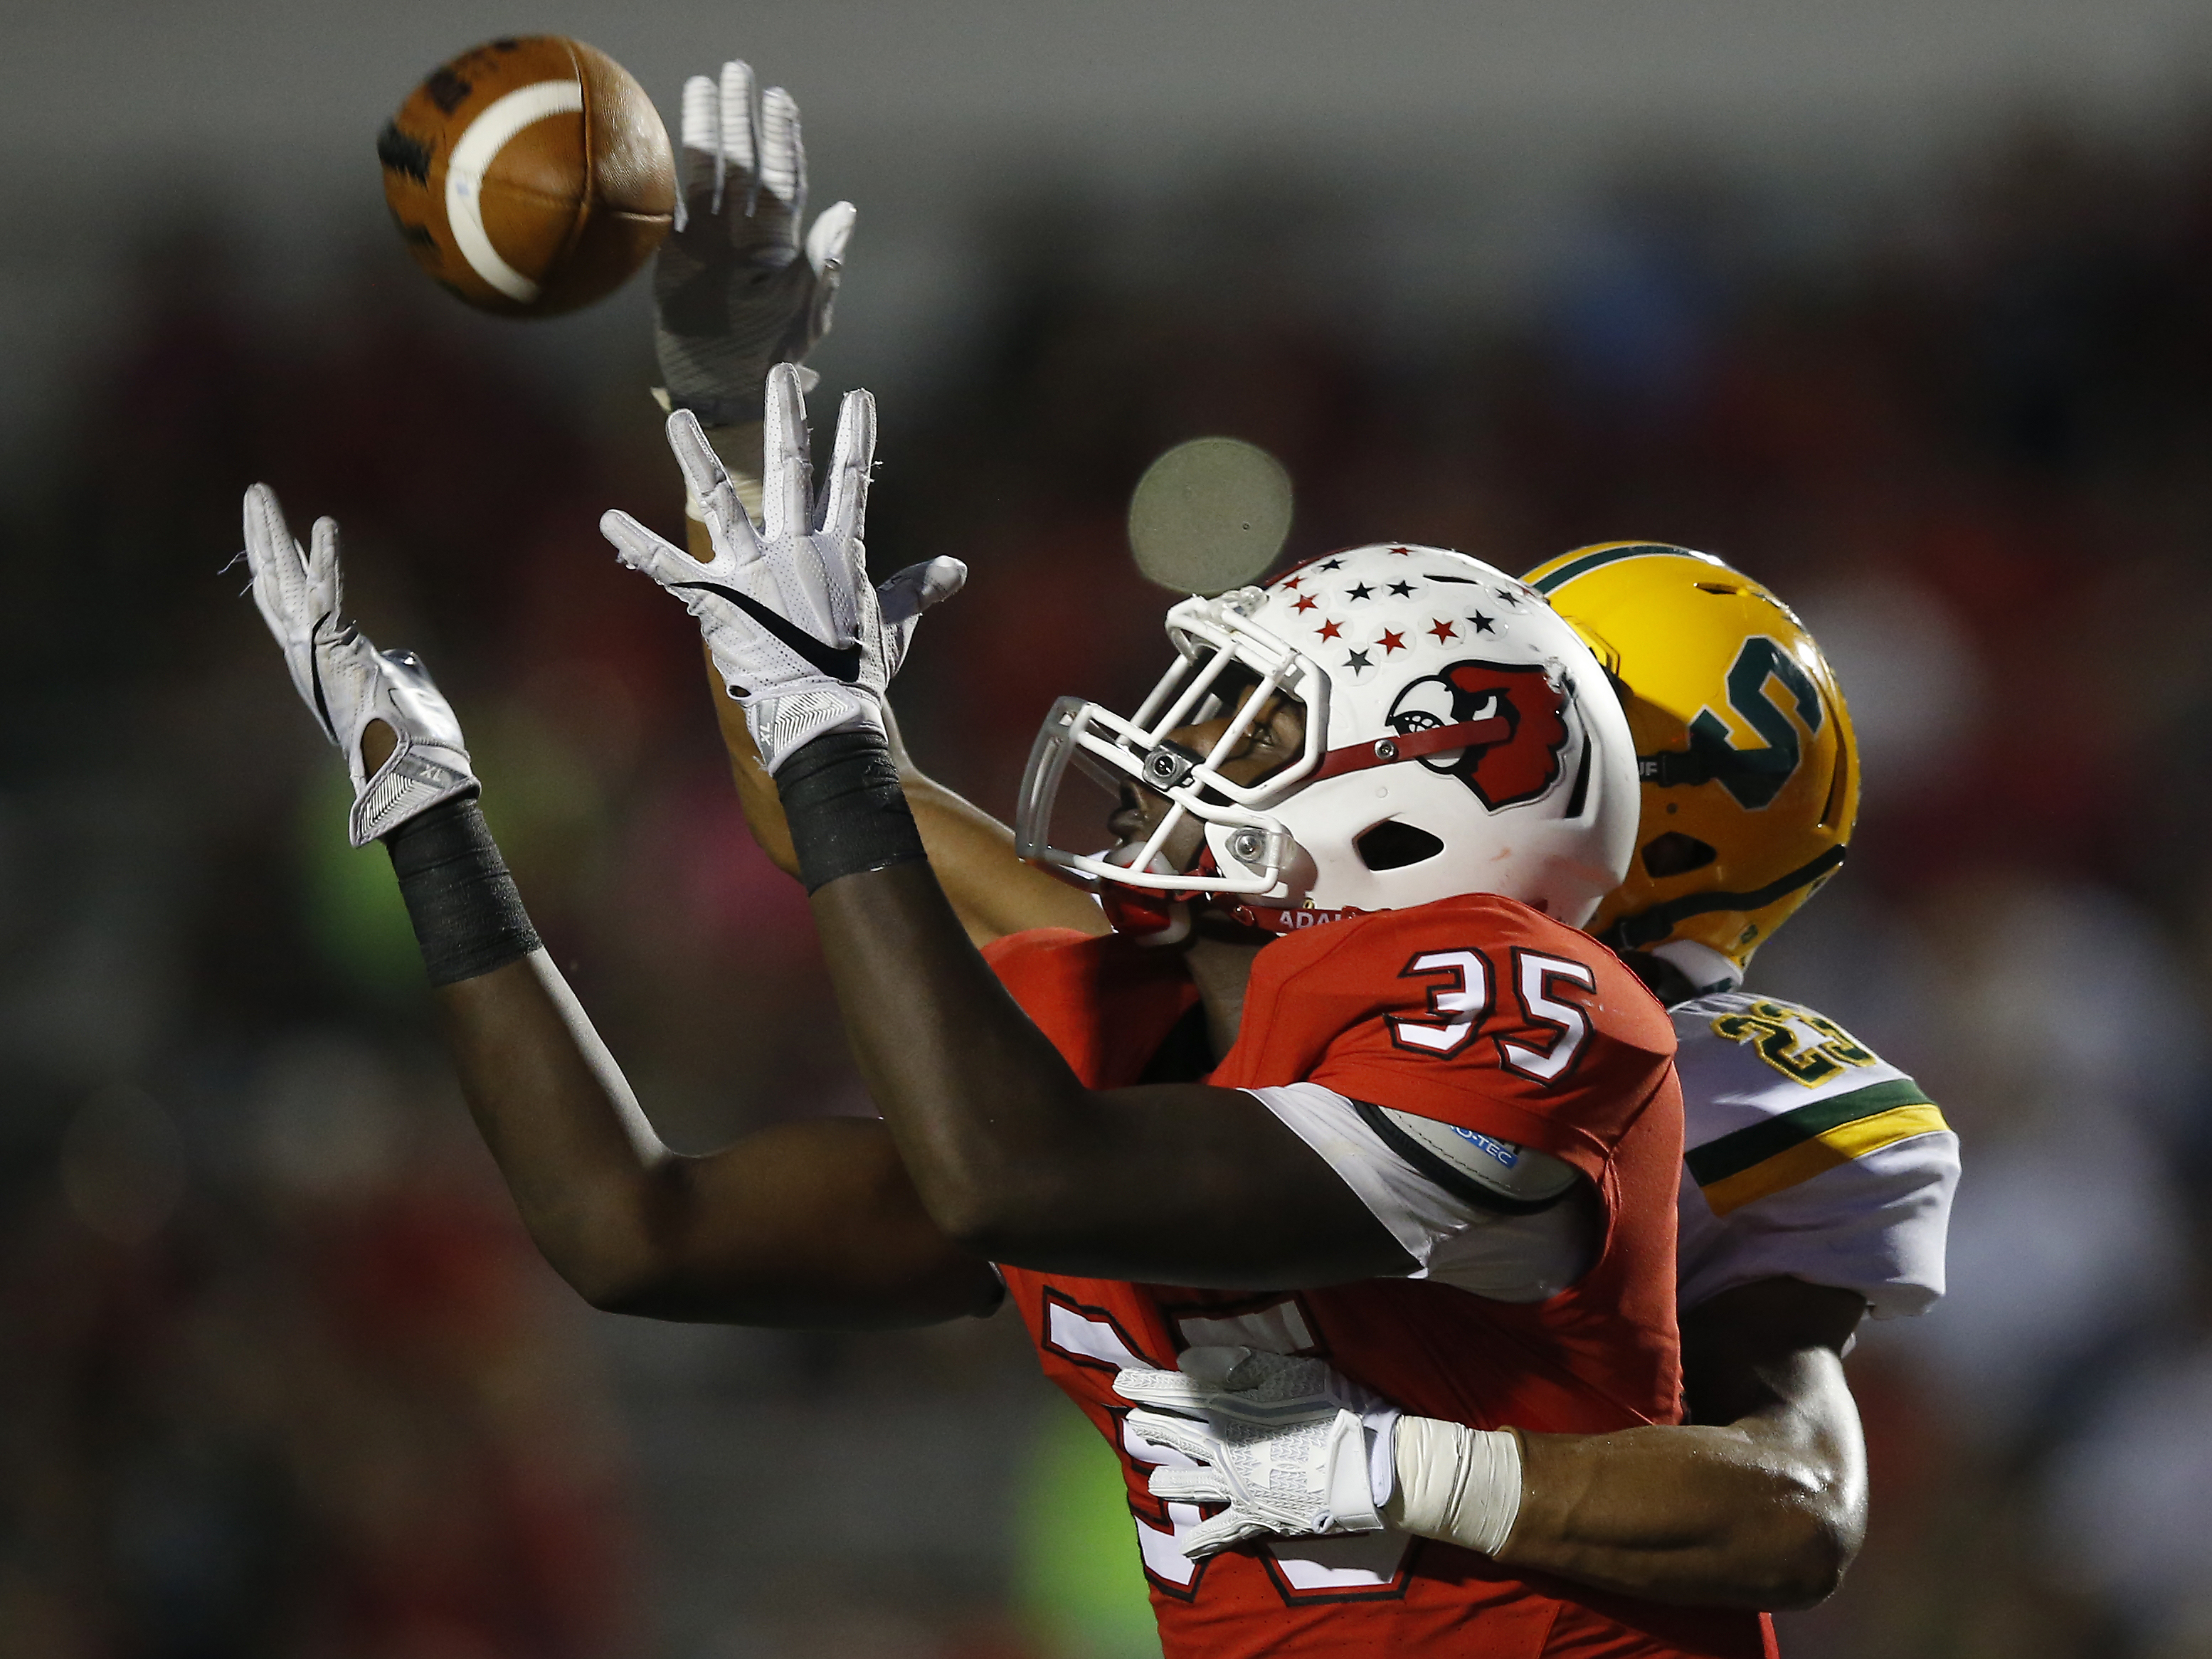 Colerain Cardinals' Eric Phillips (35) makes a touchdown catch in the first half during the high school football game between the Sycamore Aviators and Colerain Cardinals, Thursday, Sept. 22, 2016, at Colerain High School in Colerain Township.